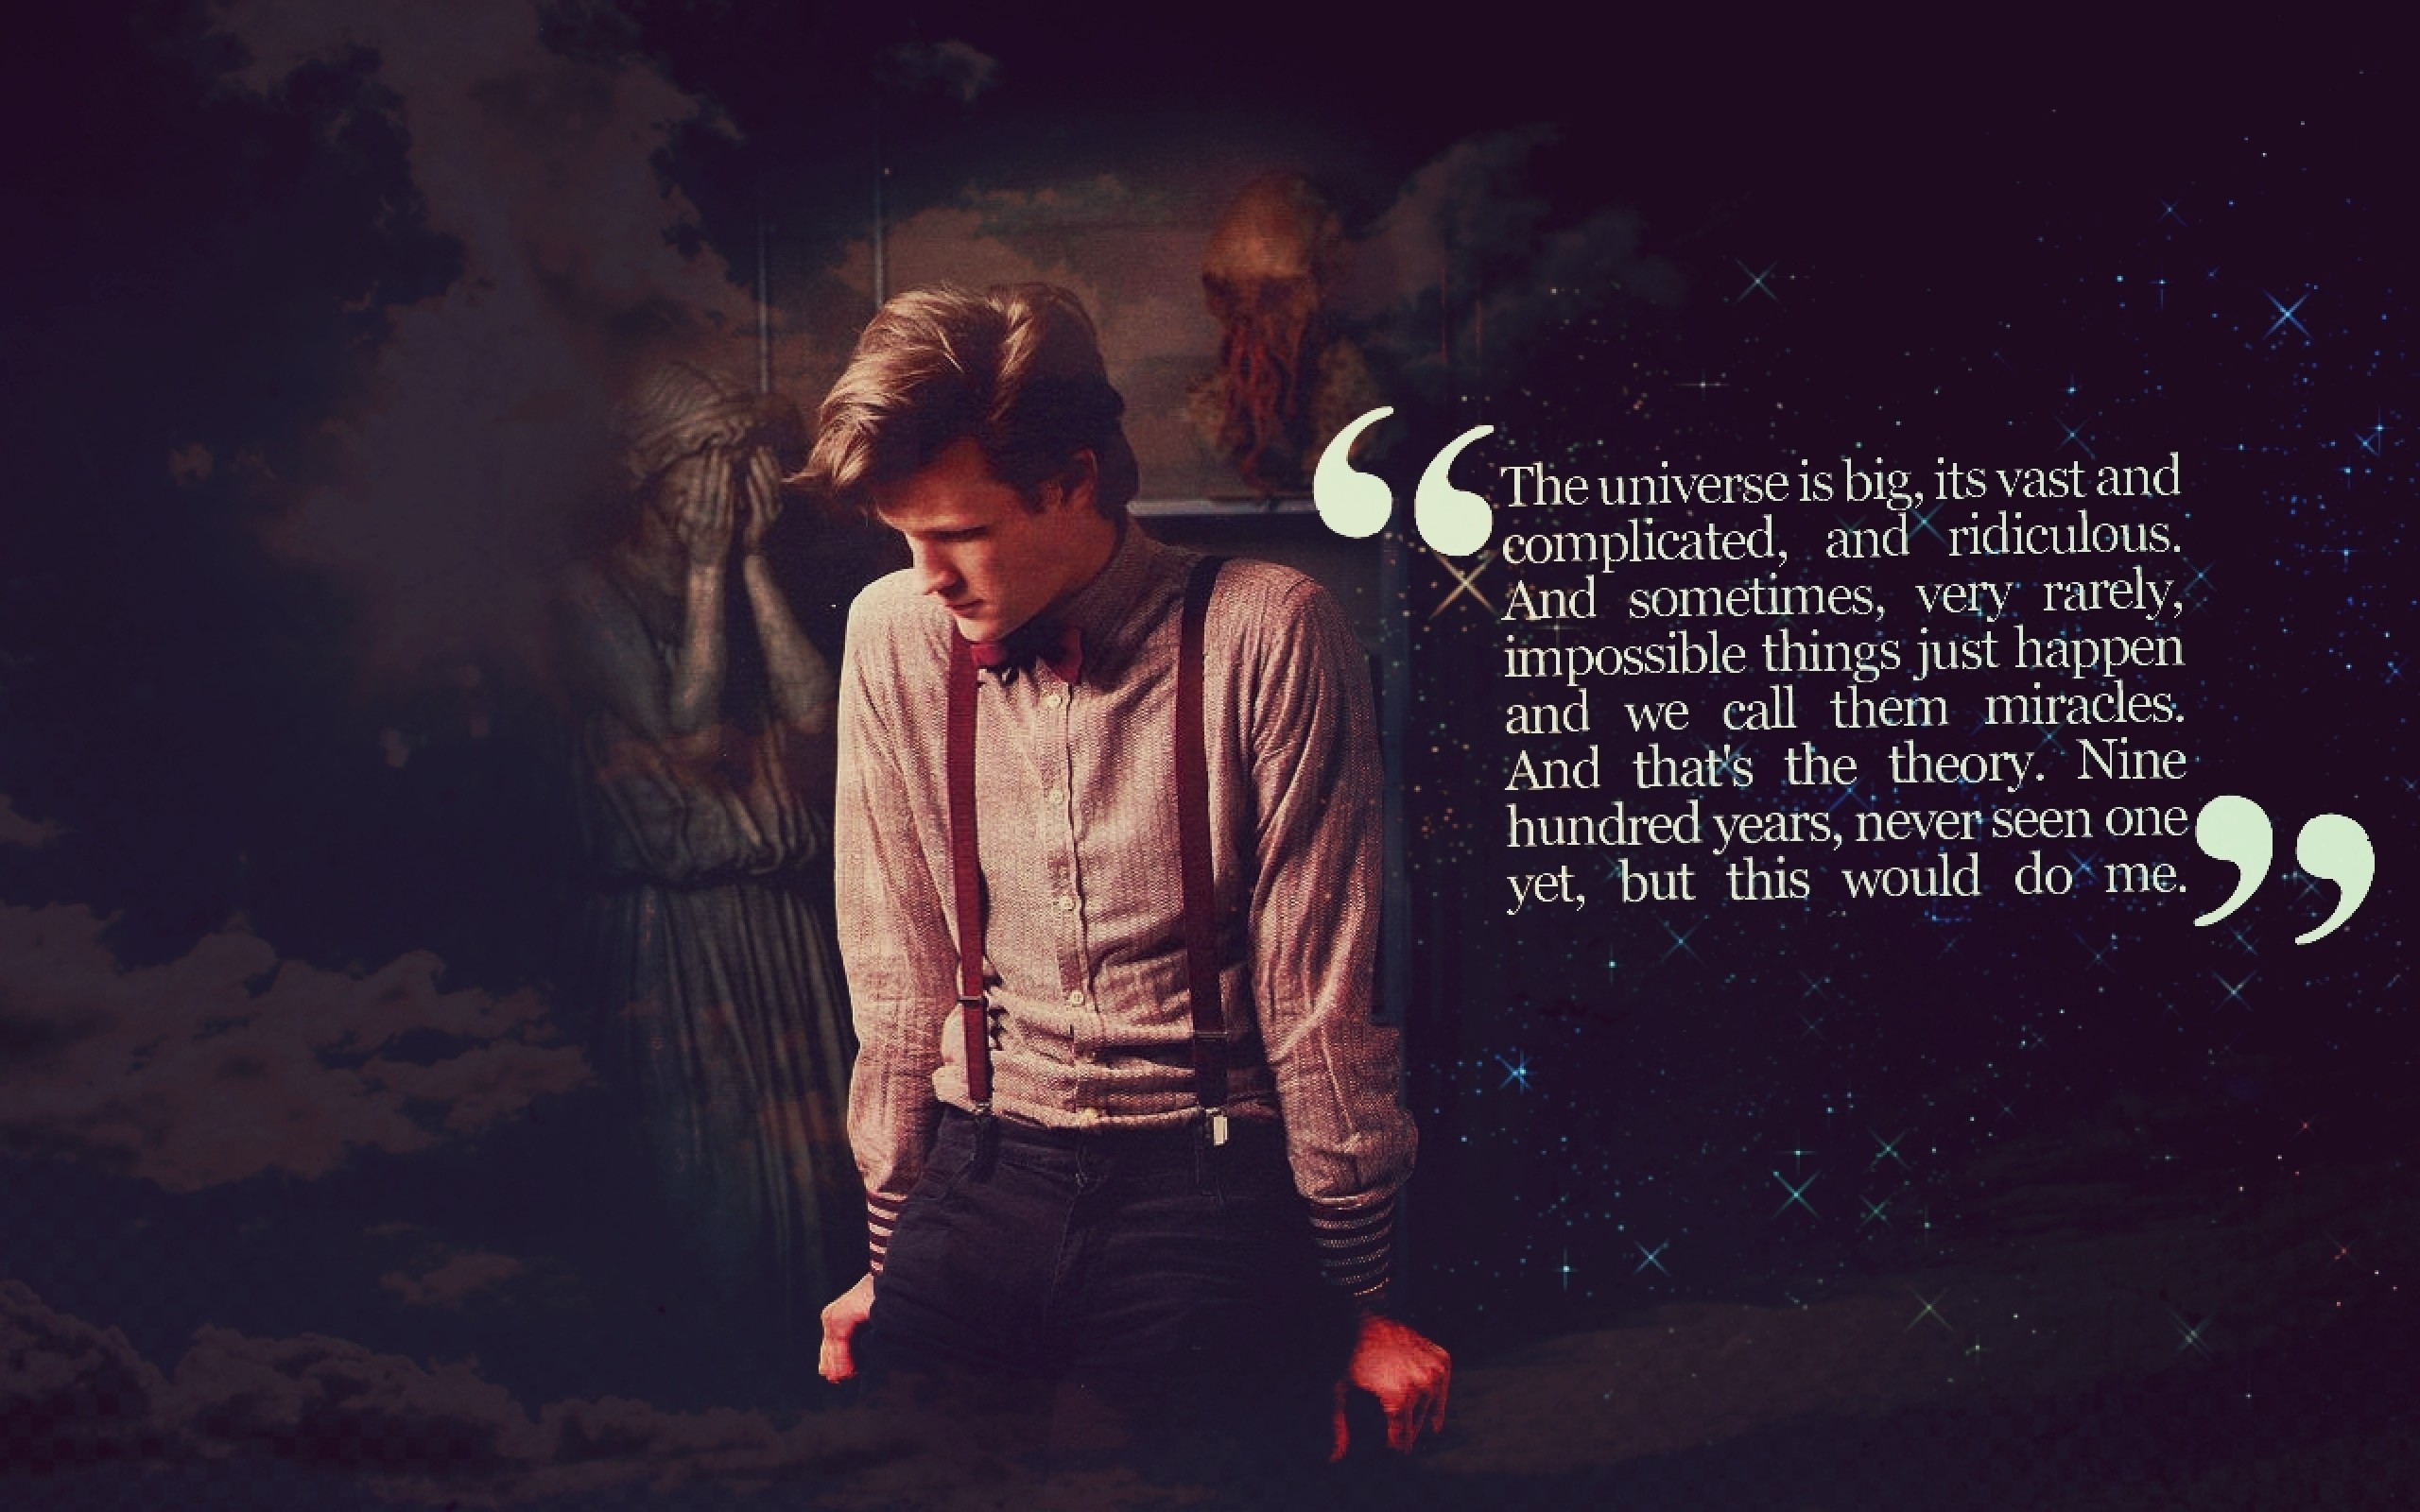 Matt Smith Doctor Who Wallpapers | HD Wallpapers | Pinterest | Matt smith  doctor and Wallpaper